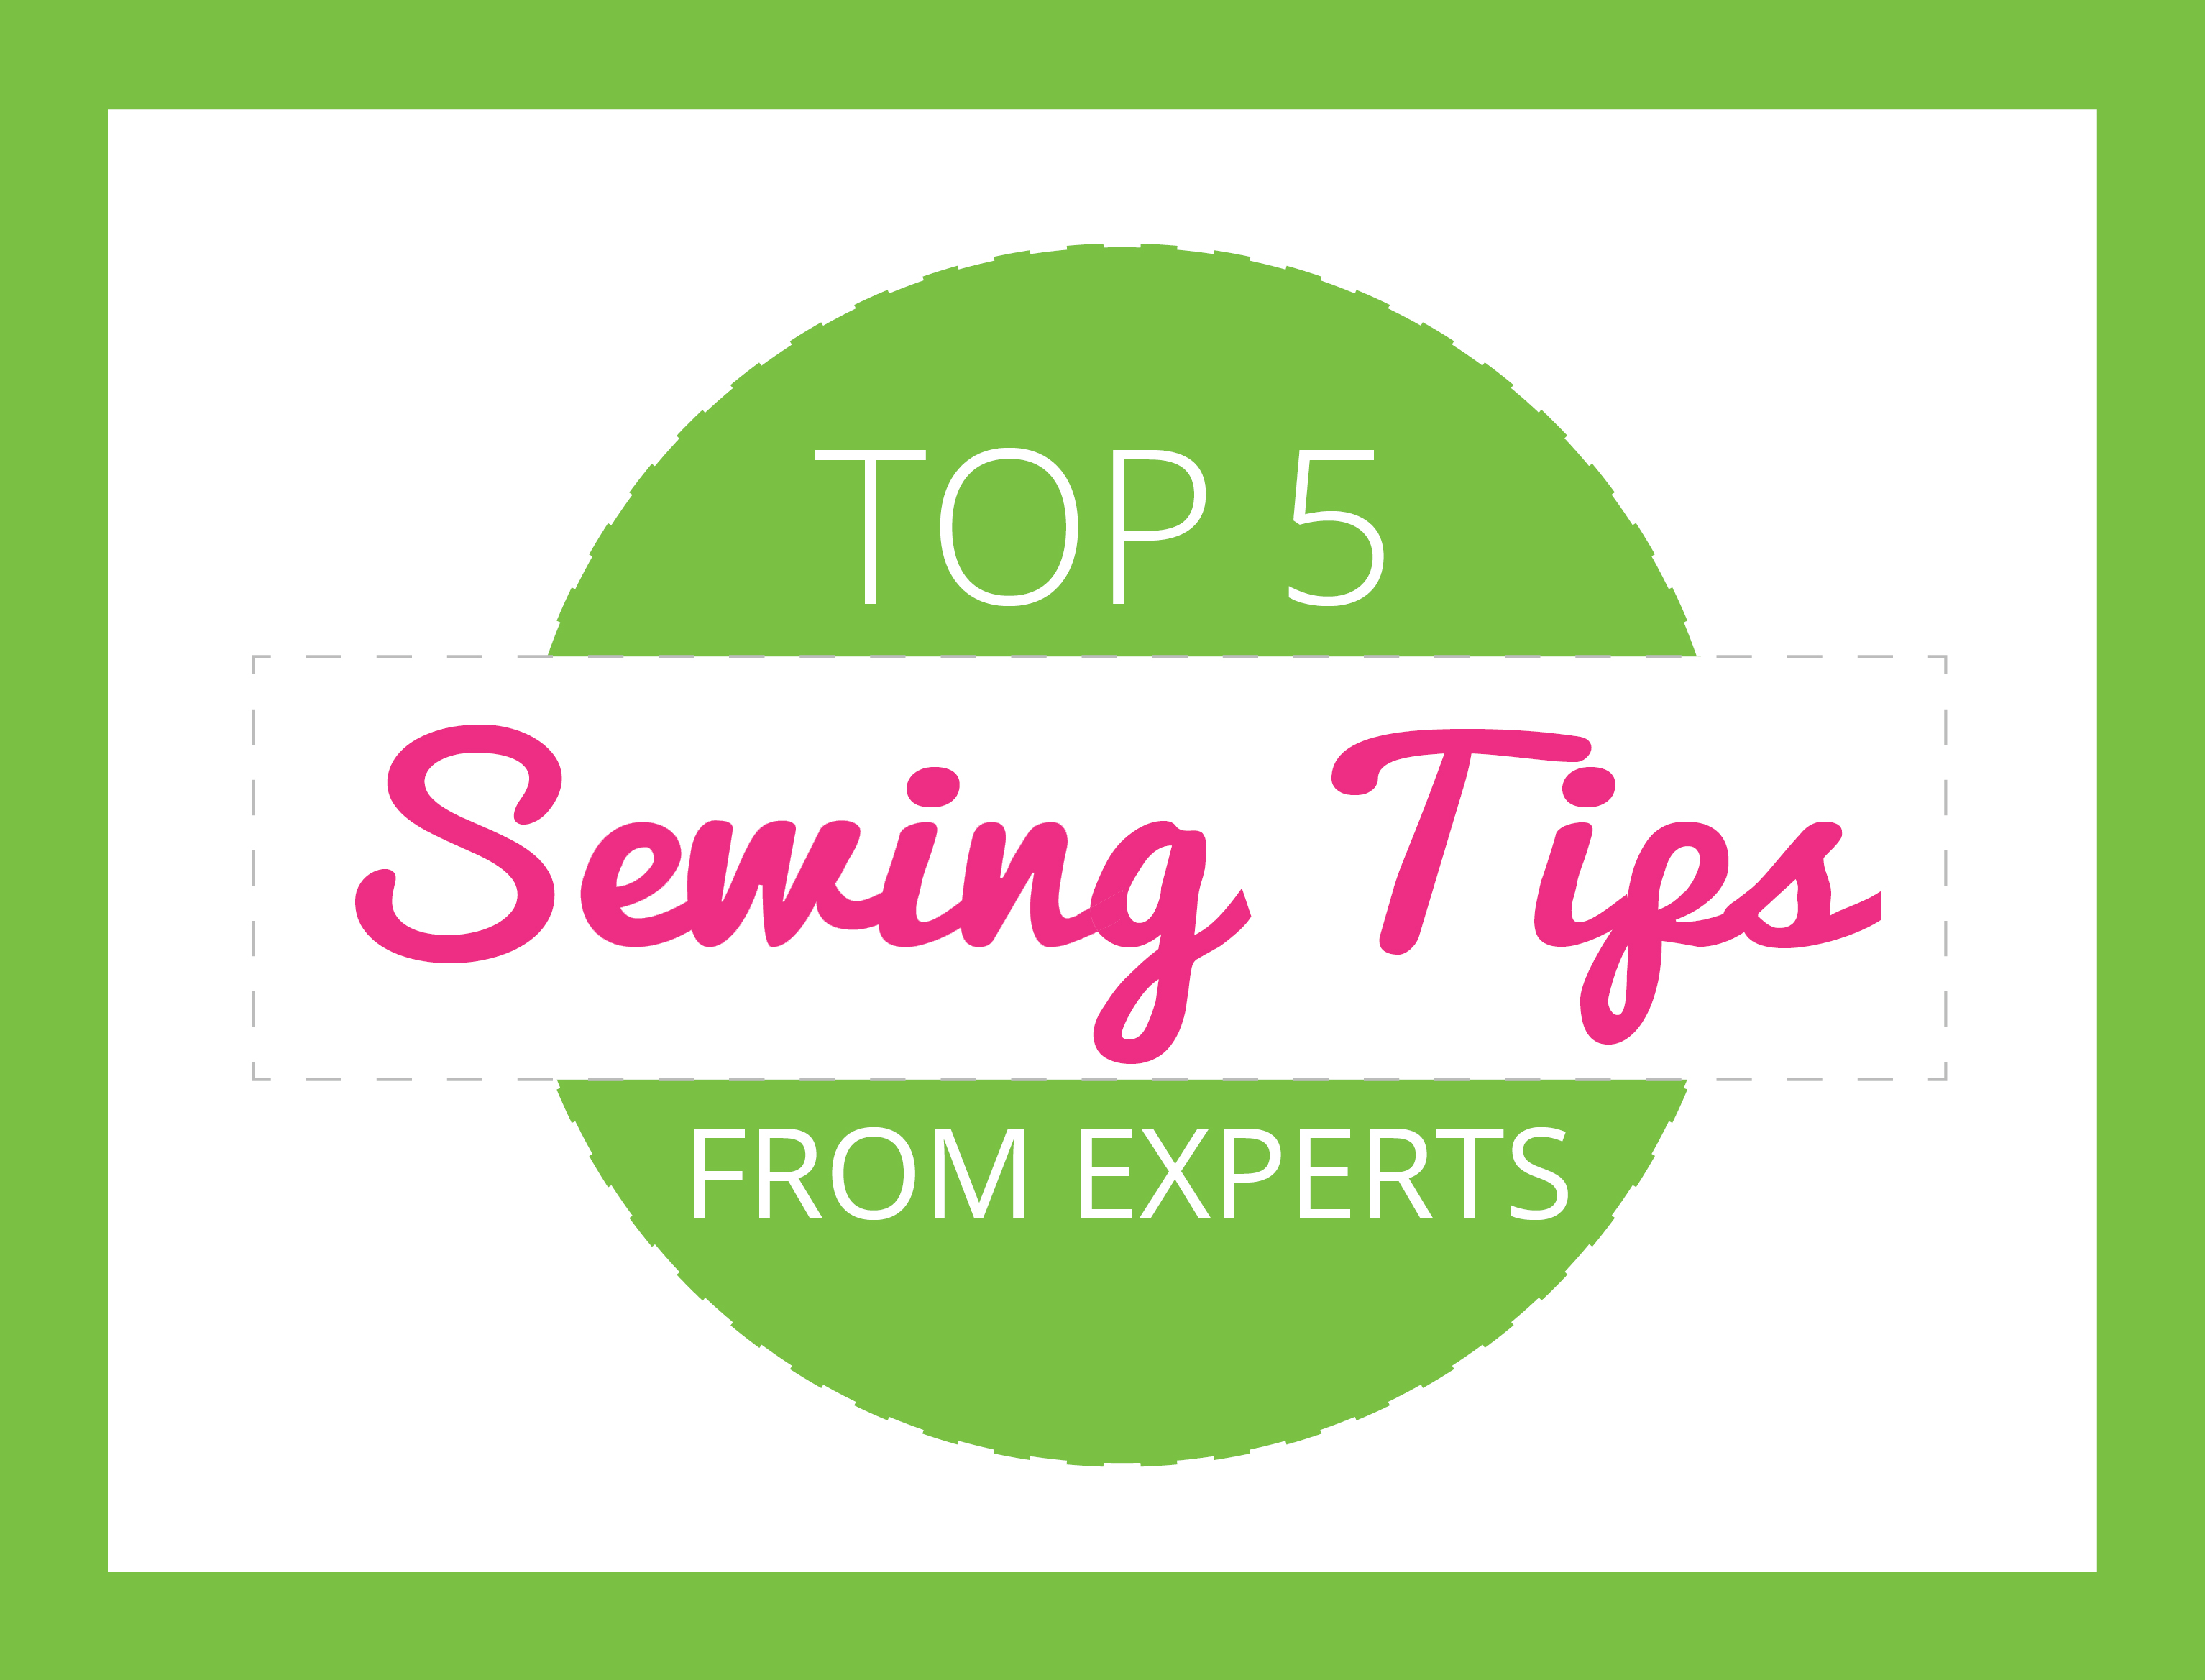 Top 5 Sewing Tips from the Experts